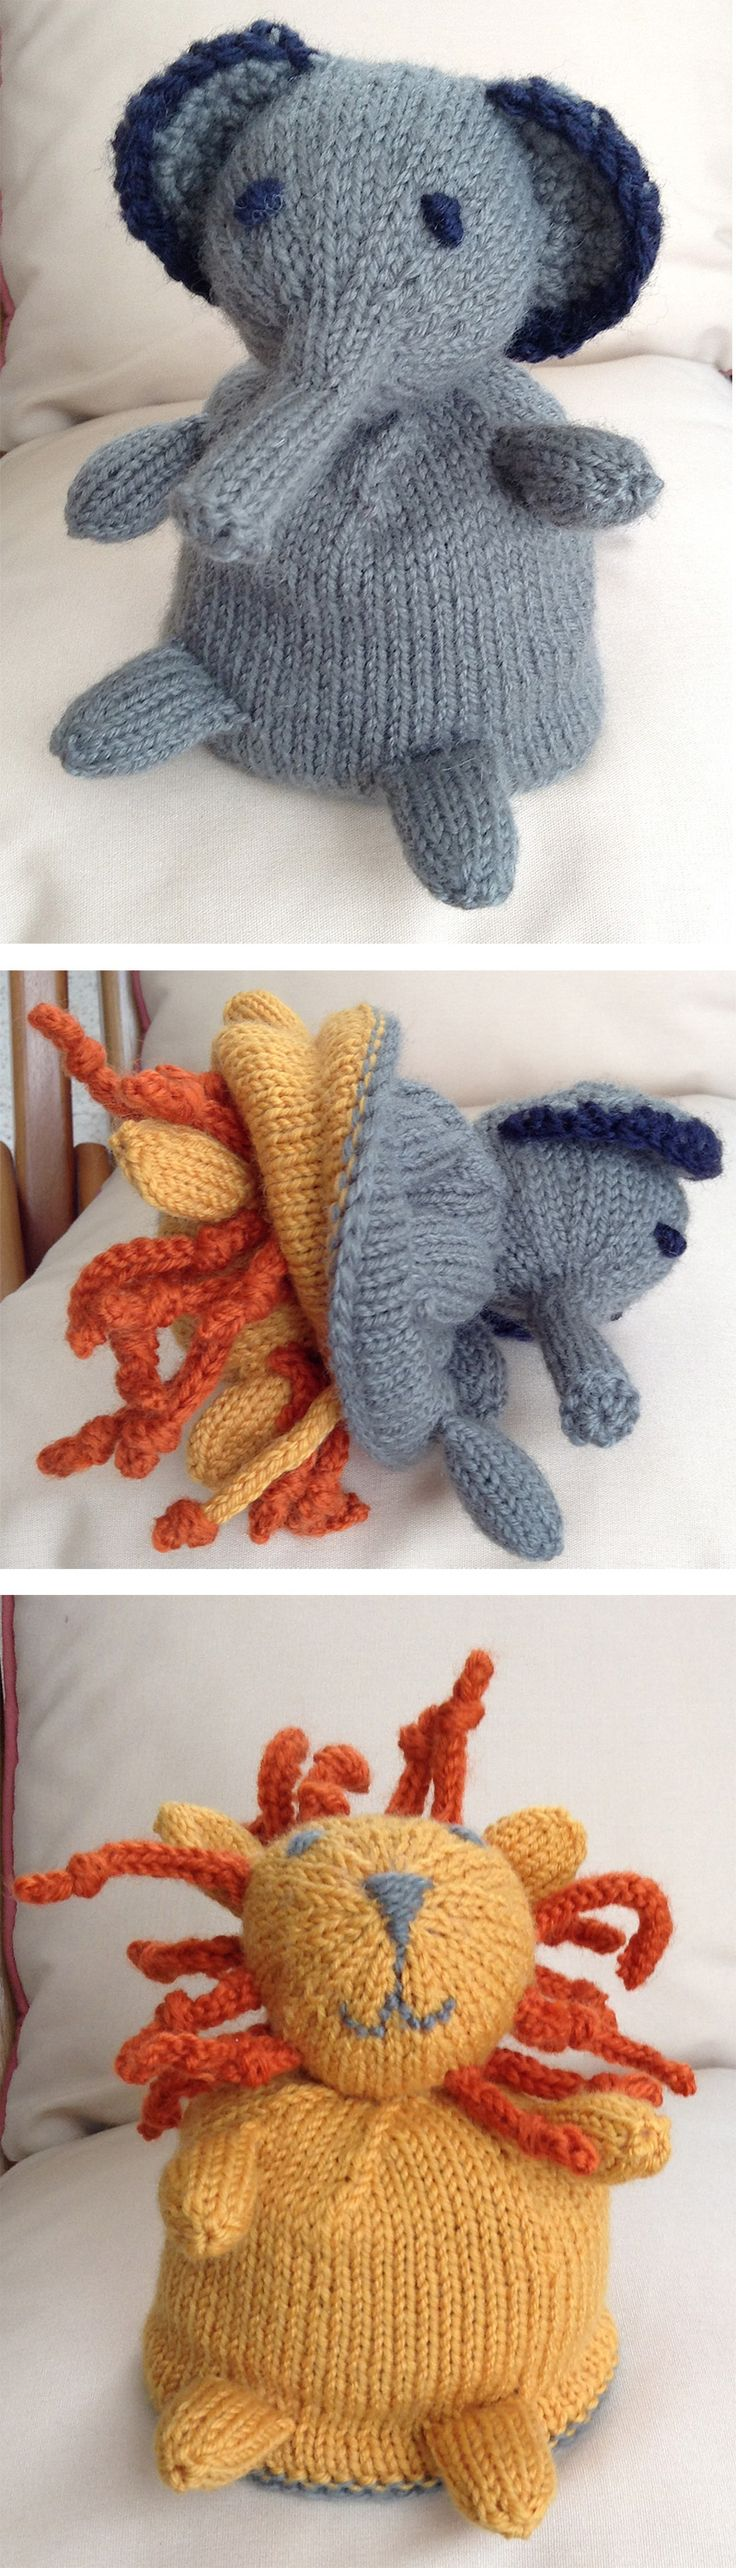 368 best animal knitting patterns images on pinterest knit knitting pattern for elephant lion topsy turvy flip toy this elephant to lion is bankloansurffo Image collections